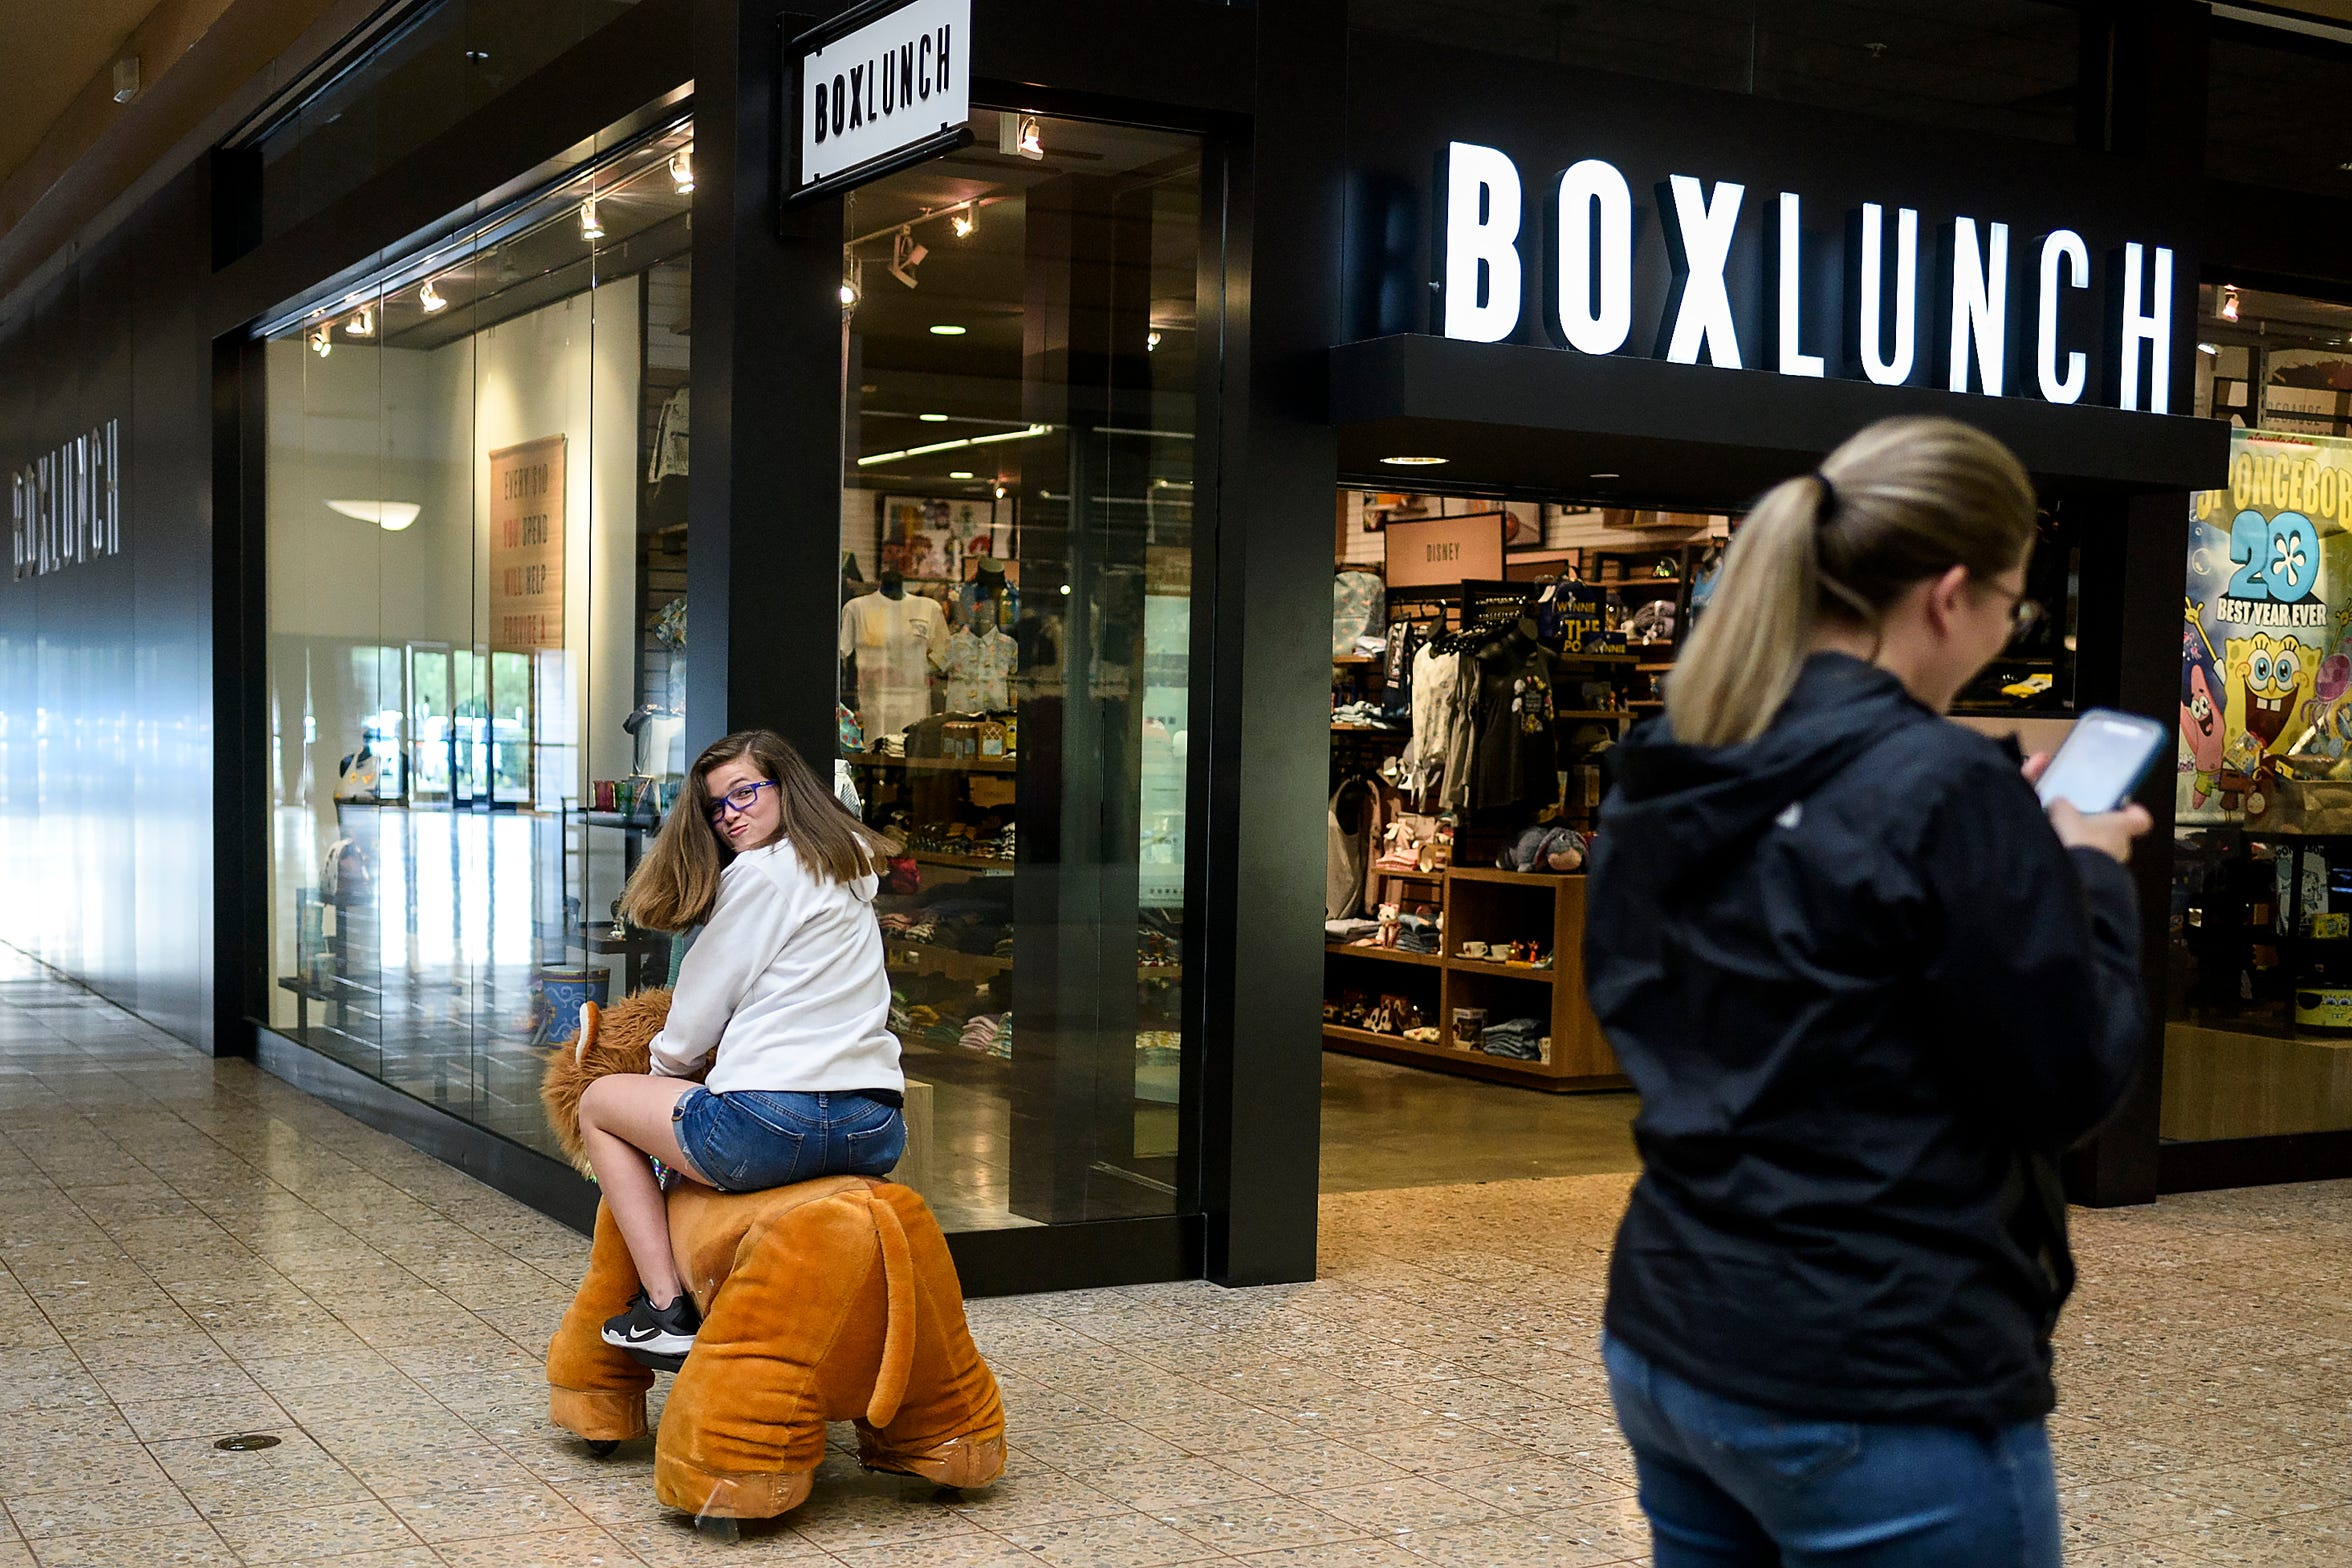 Before shopping for an eighth grade graduation outfit, Kaylie Petersen, left, makes her mother Rachel Petersen, right, laugh while riding around Eastland Mall on a motorized lion, Tuesday evening, May 14, 2019. Kaylie doesn't like wearing dresses so they found a black jumpsuit and a cardigan for her to wear.